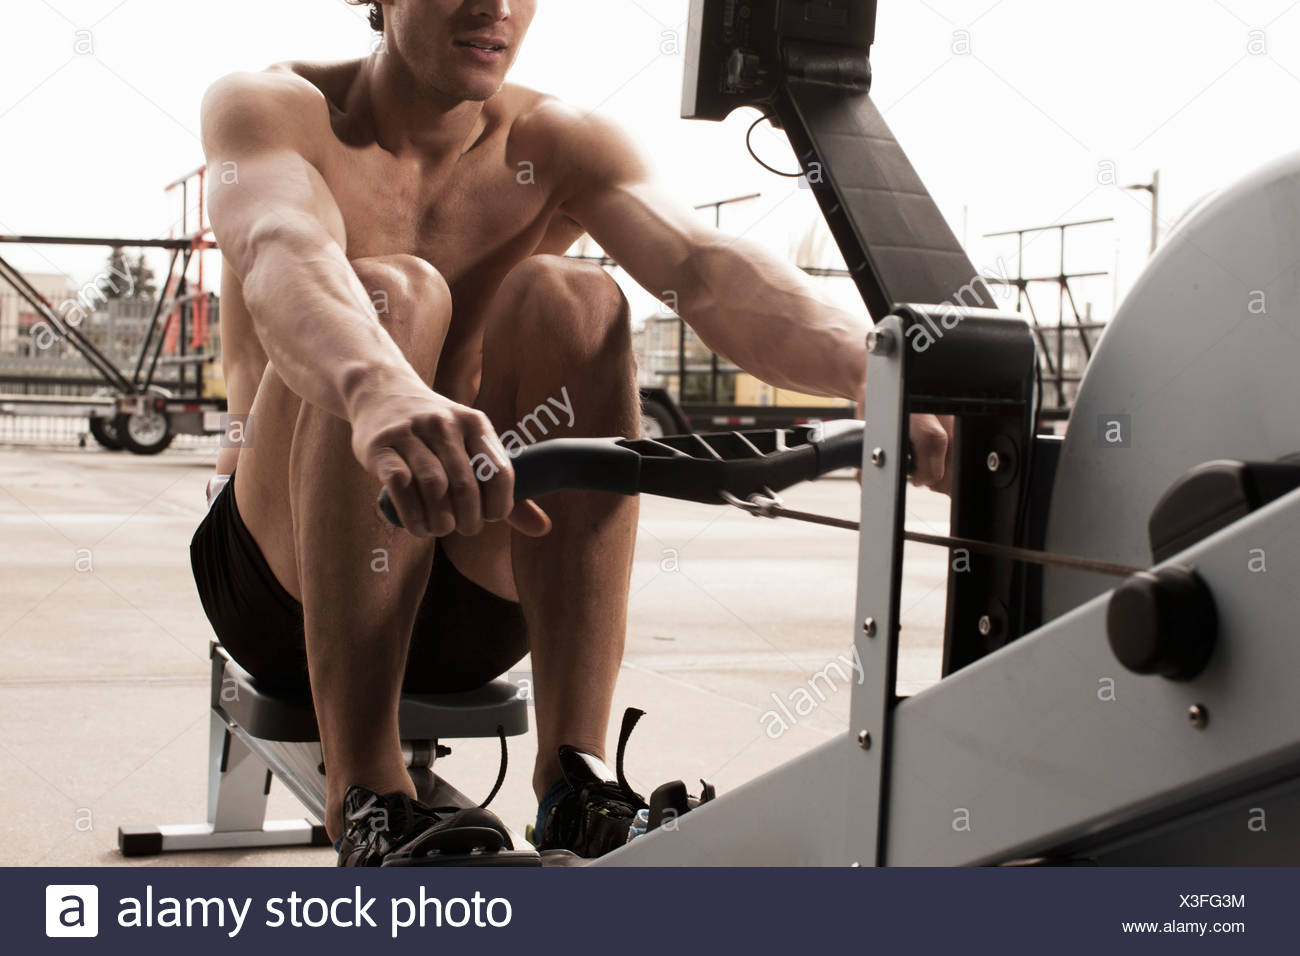 Man using exercise equipment in gym - Stock Image